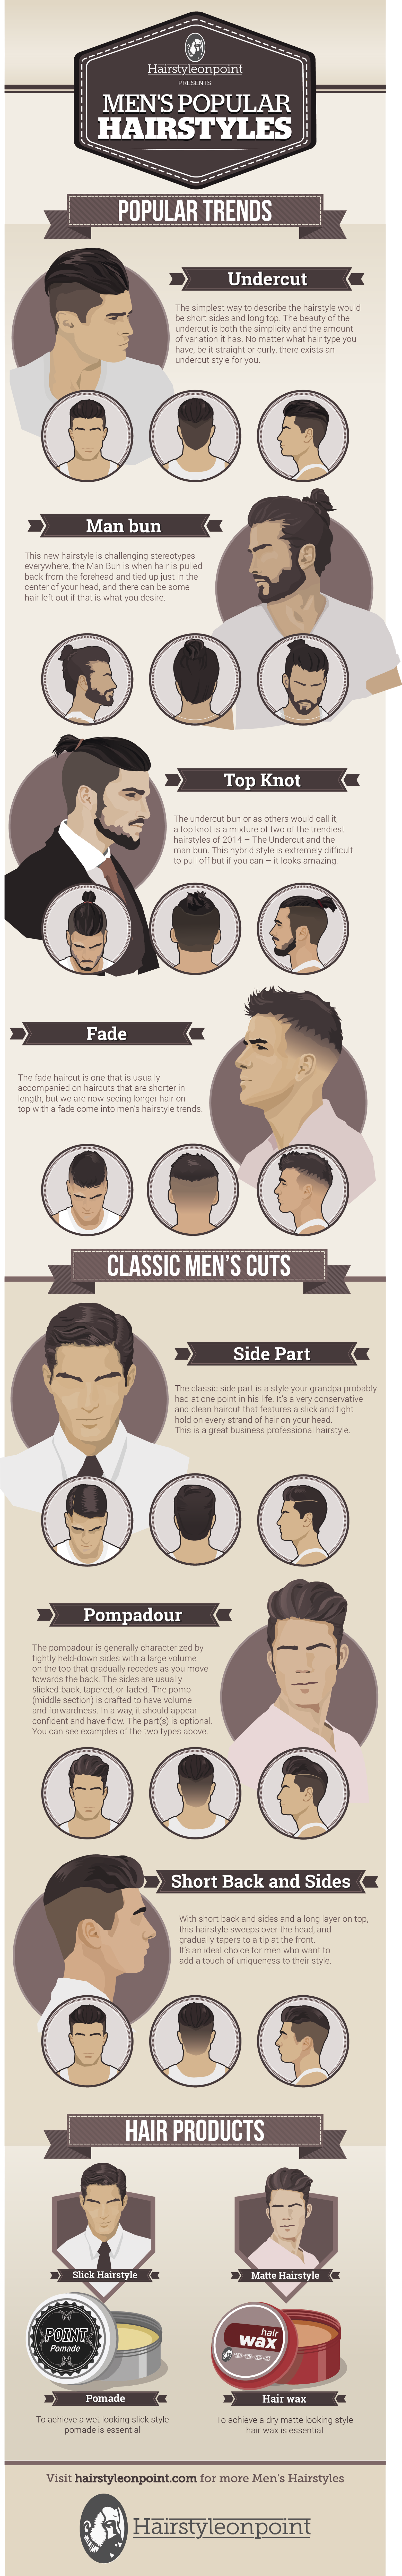 A definitive guide to men's hair products.